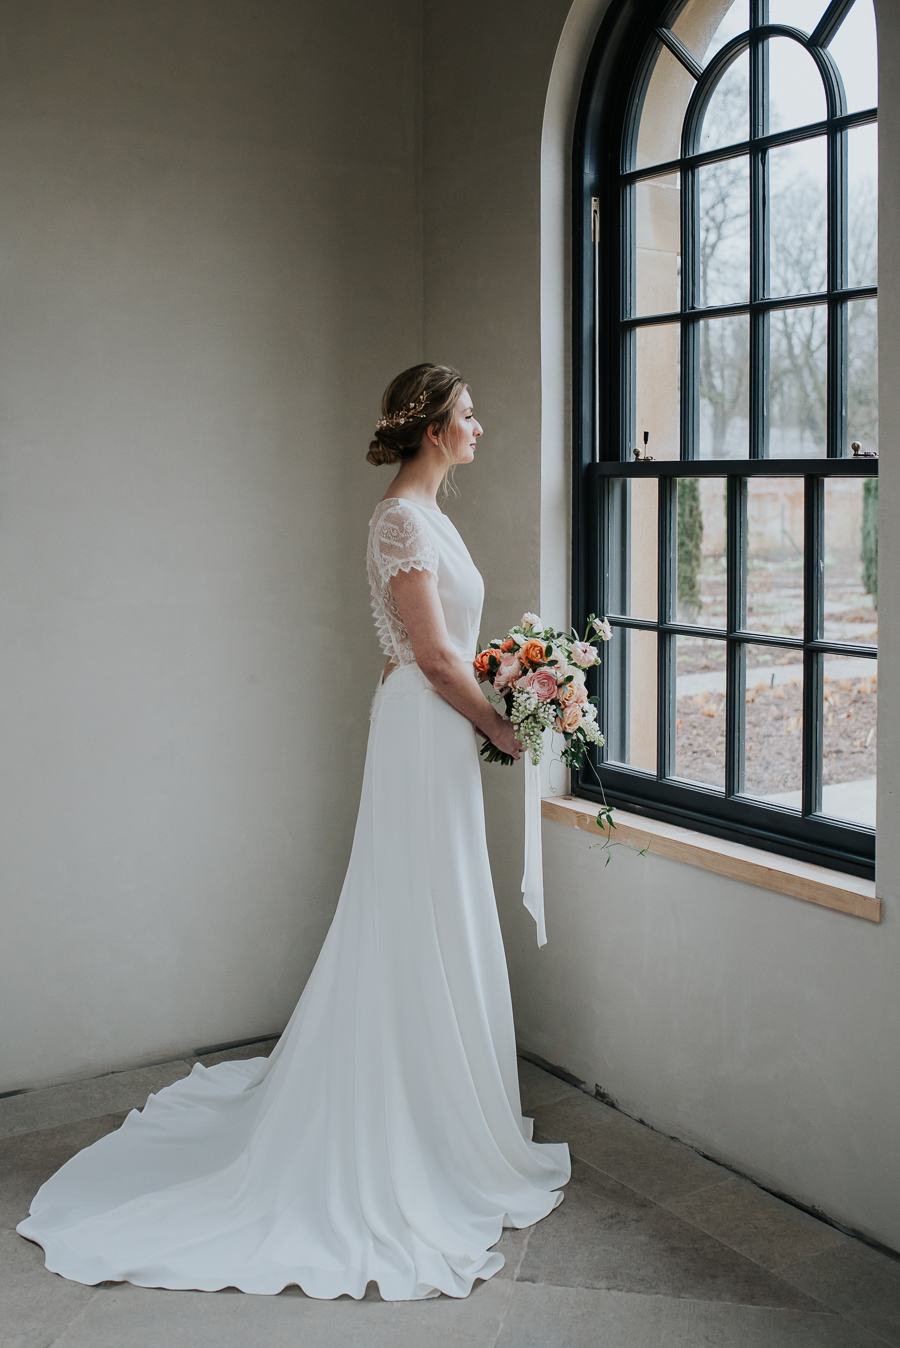 Michelle Cordner Photography on the English Wedding Blog (11)